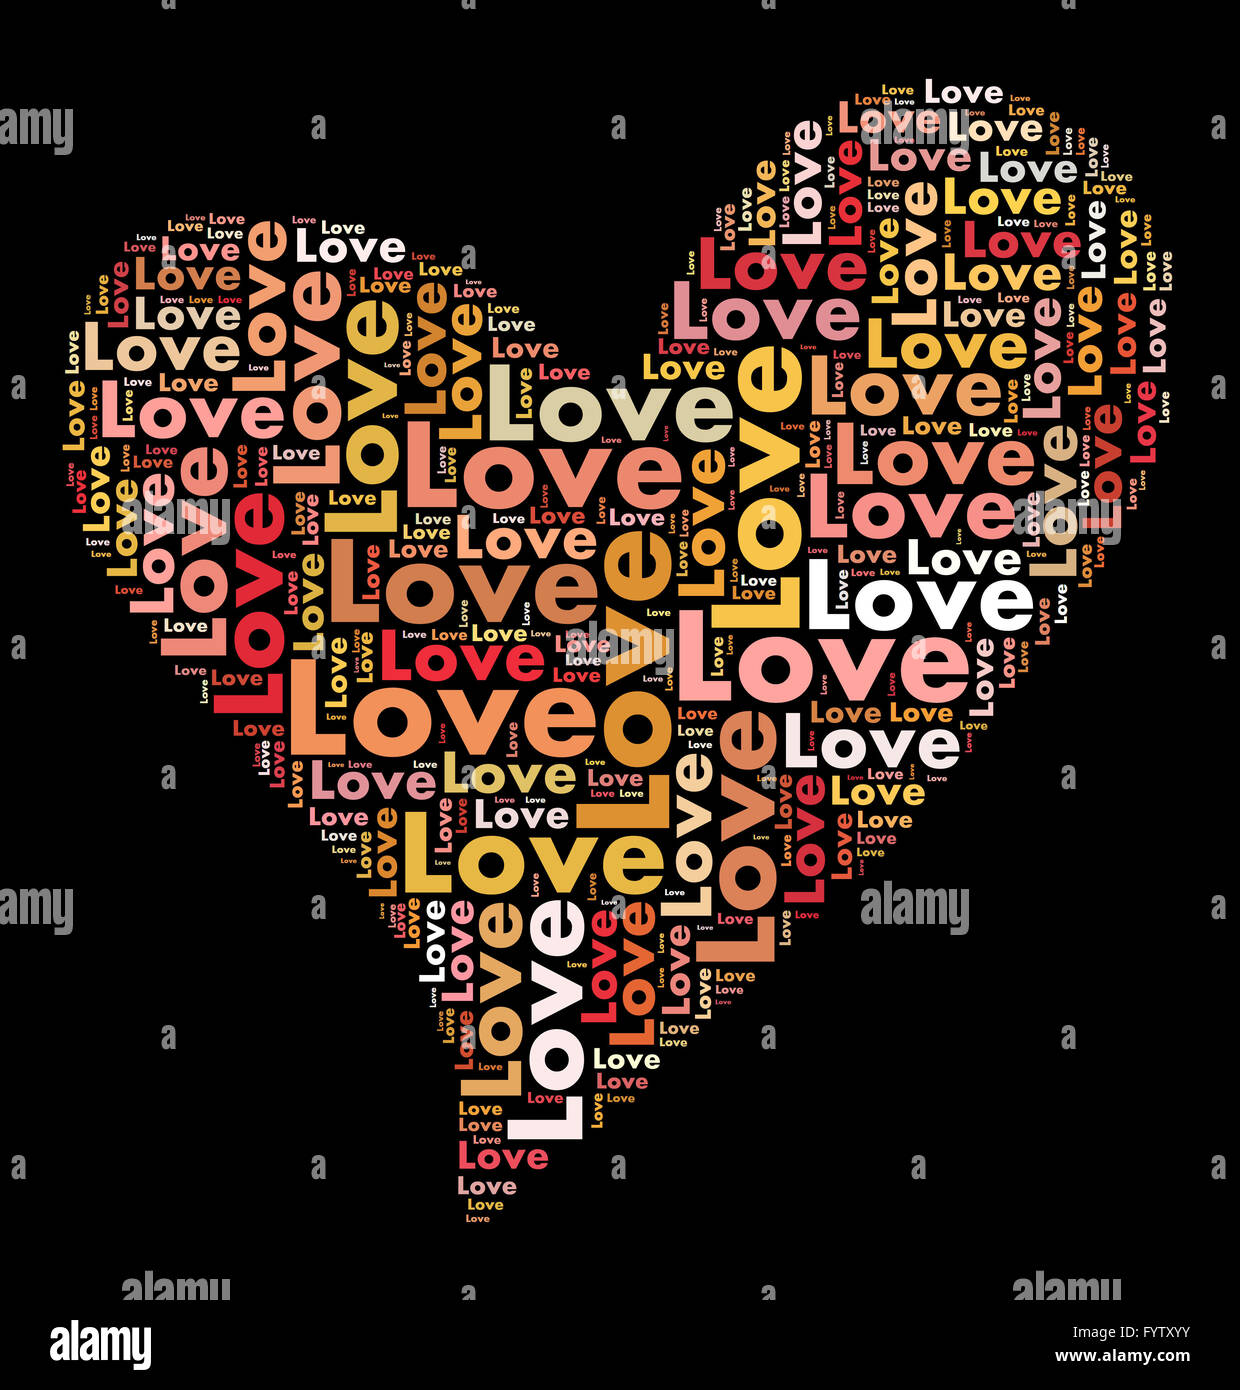 valentines day card word cloud concept stock photo 103195567 alamy